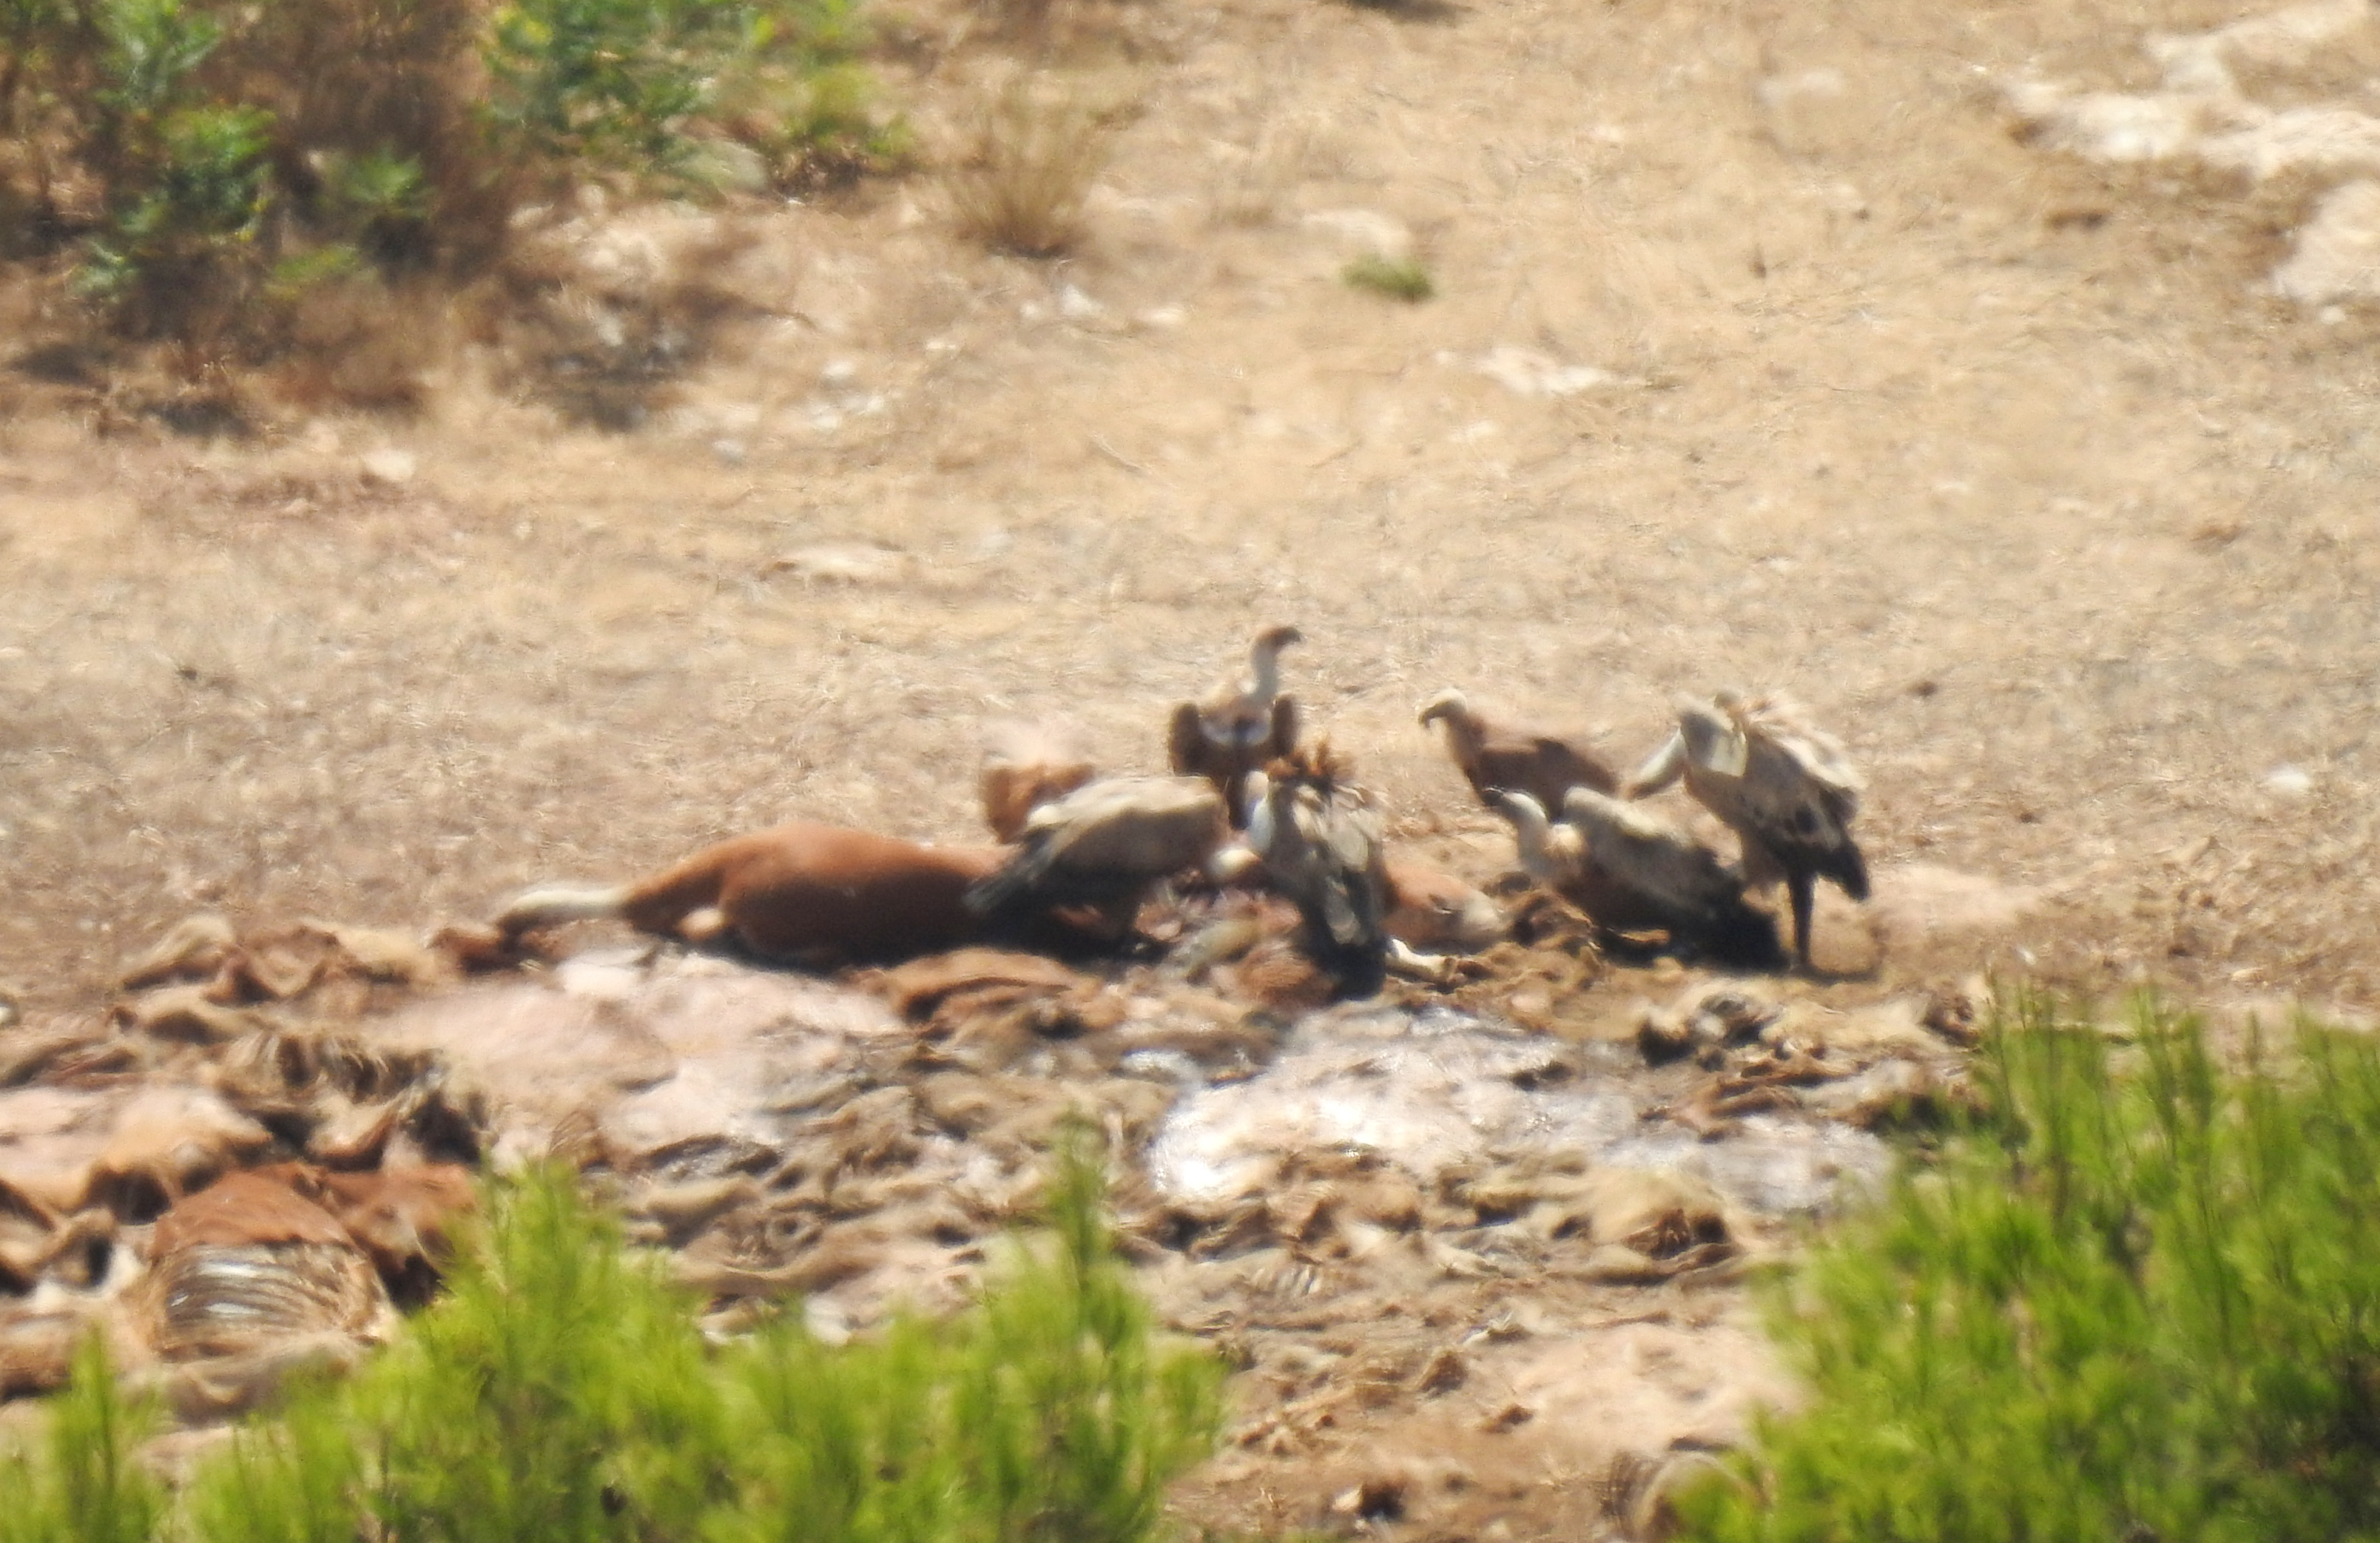 Griffon vultures at the feeding station